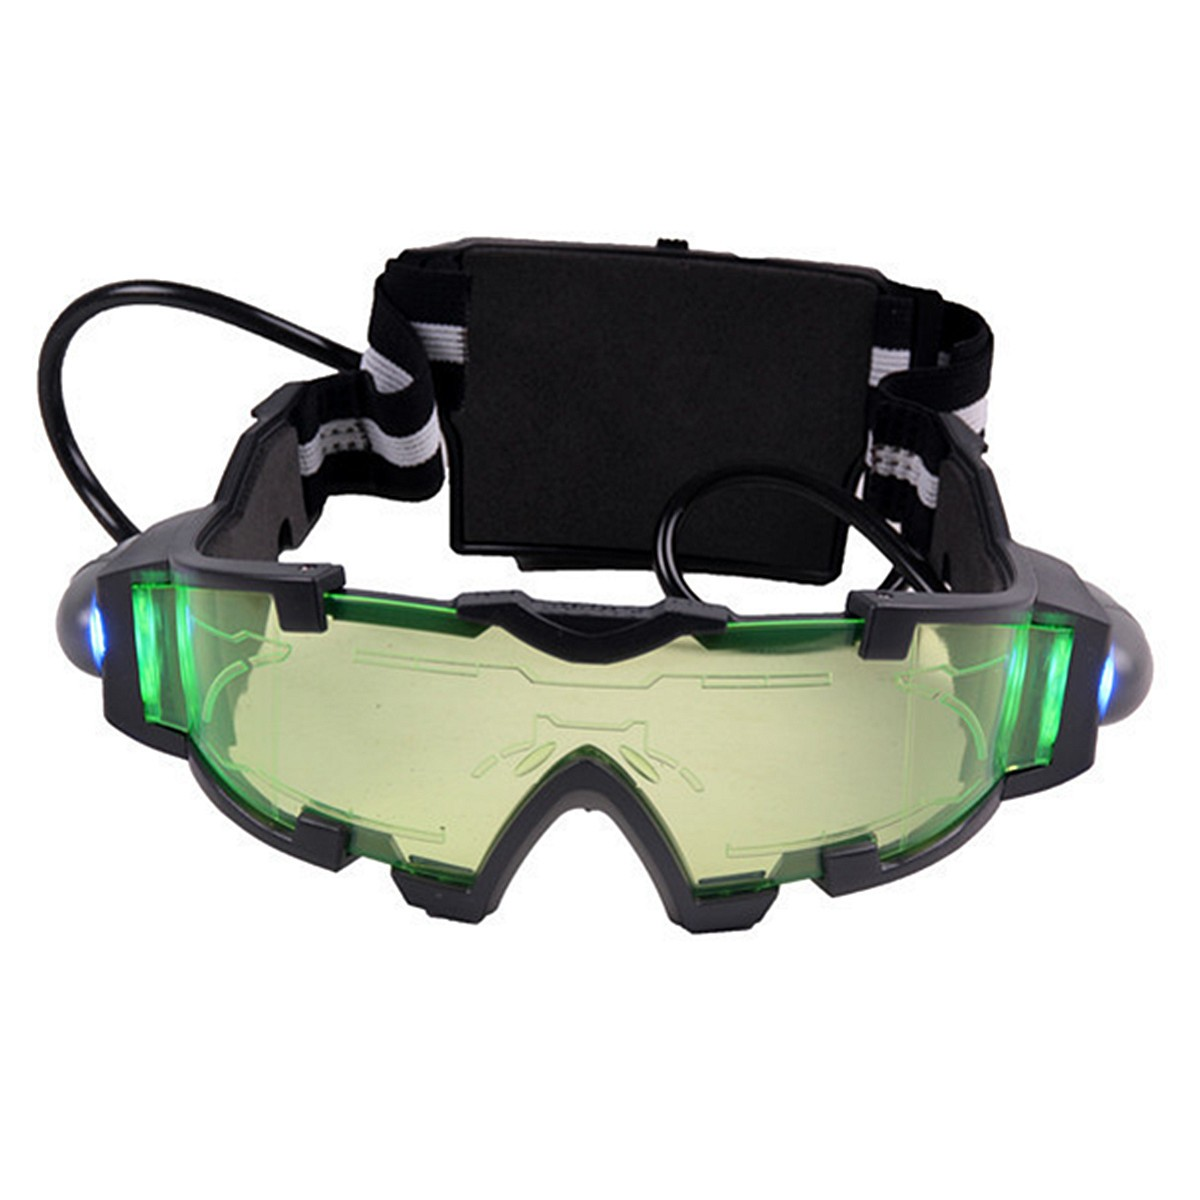 Adjustable Elastic Military Night Vision Goggles Glasses Windproof Security Eyeshield Safety Eye Protection Glasses цены